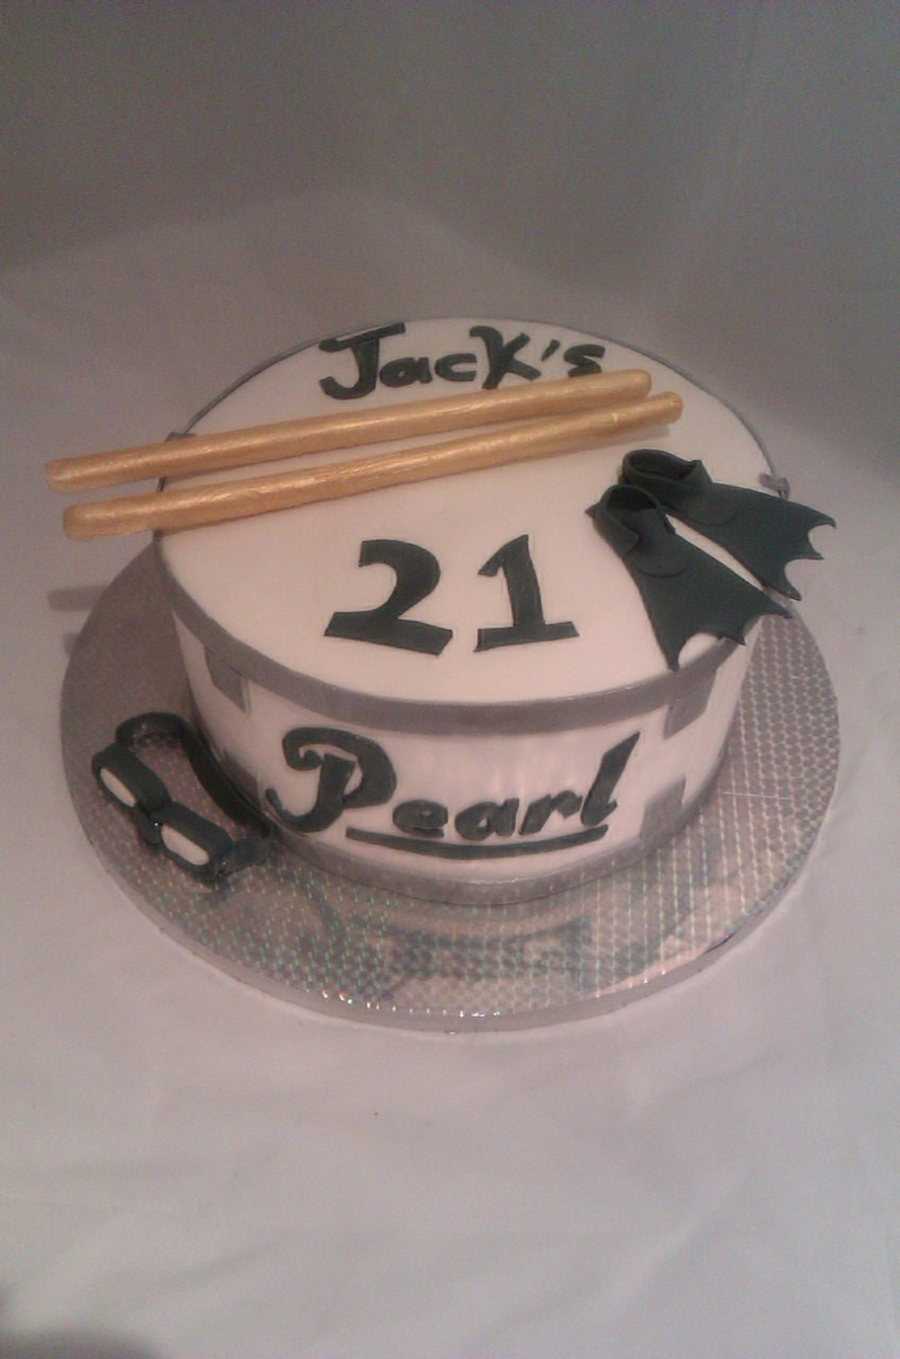 For A Drummer Who Likes Swimming! on Cake Central